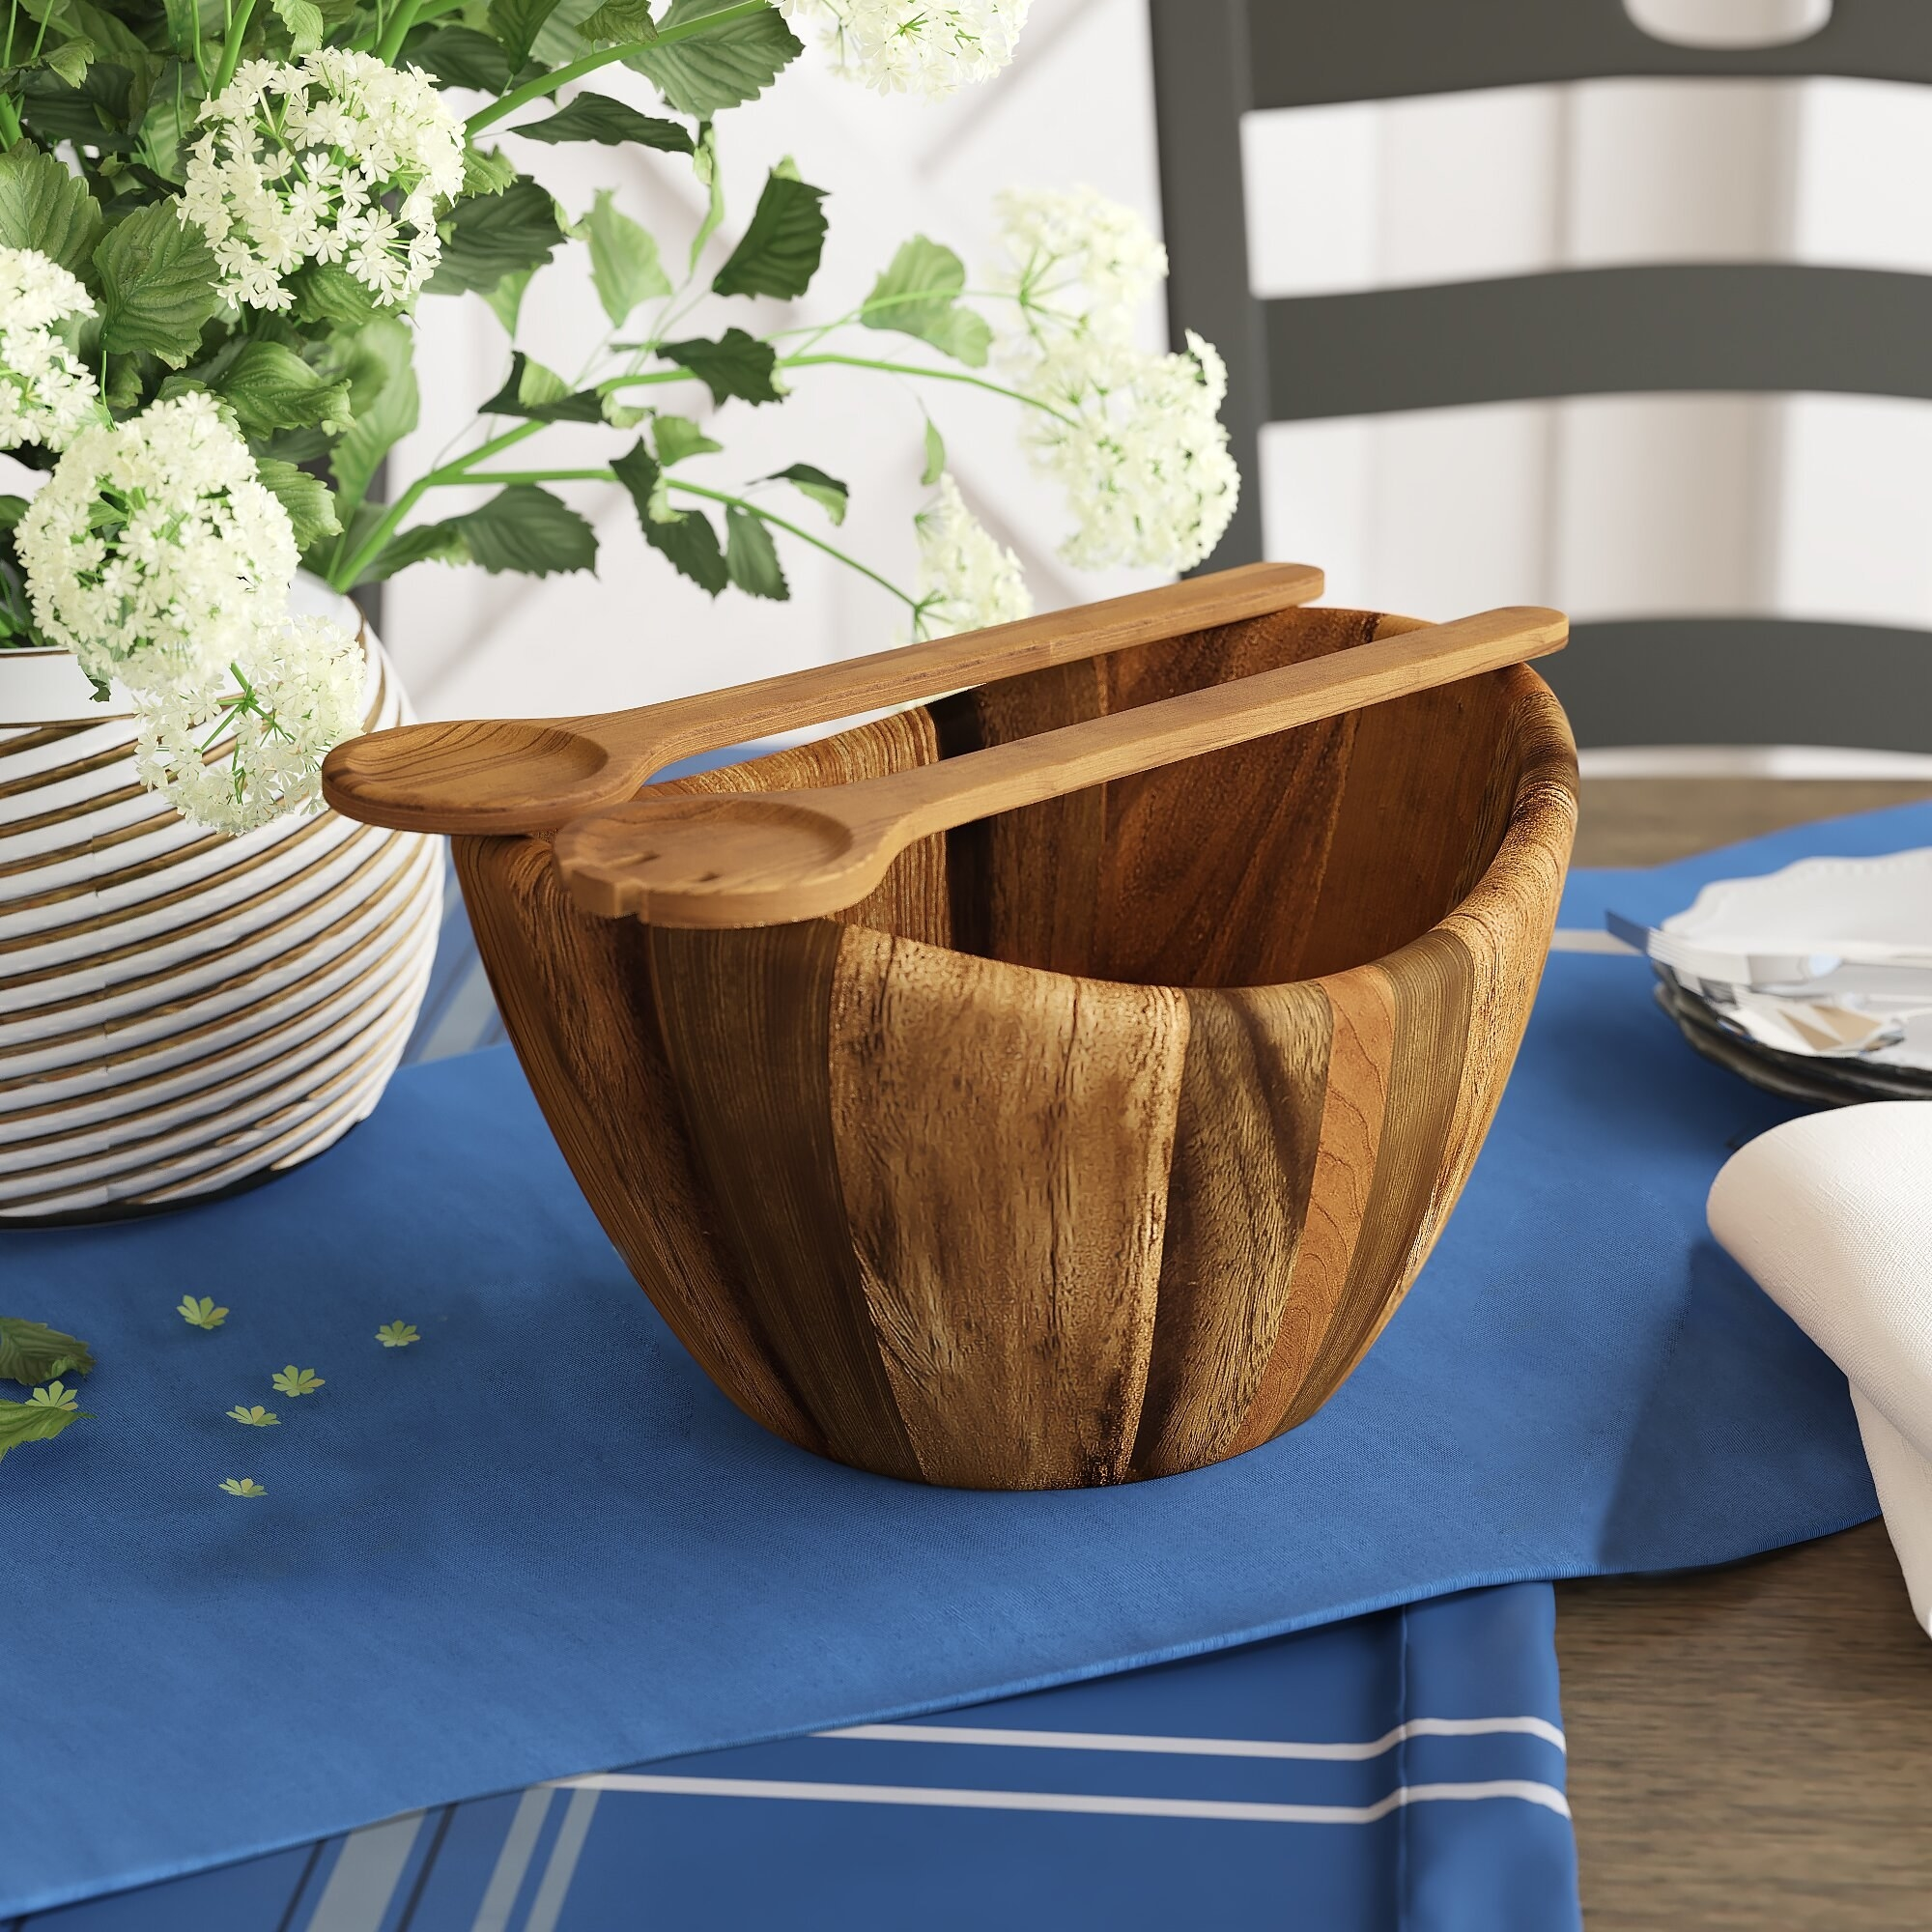 A wood grain finished salad bowl with matching spoon and fork serving utensils